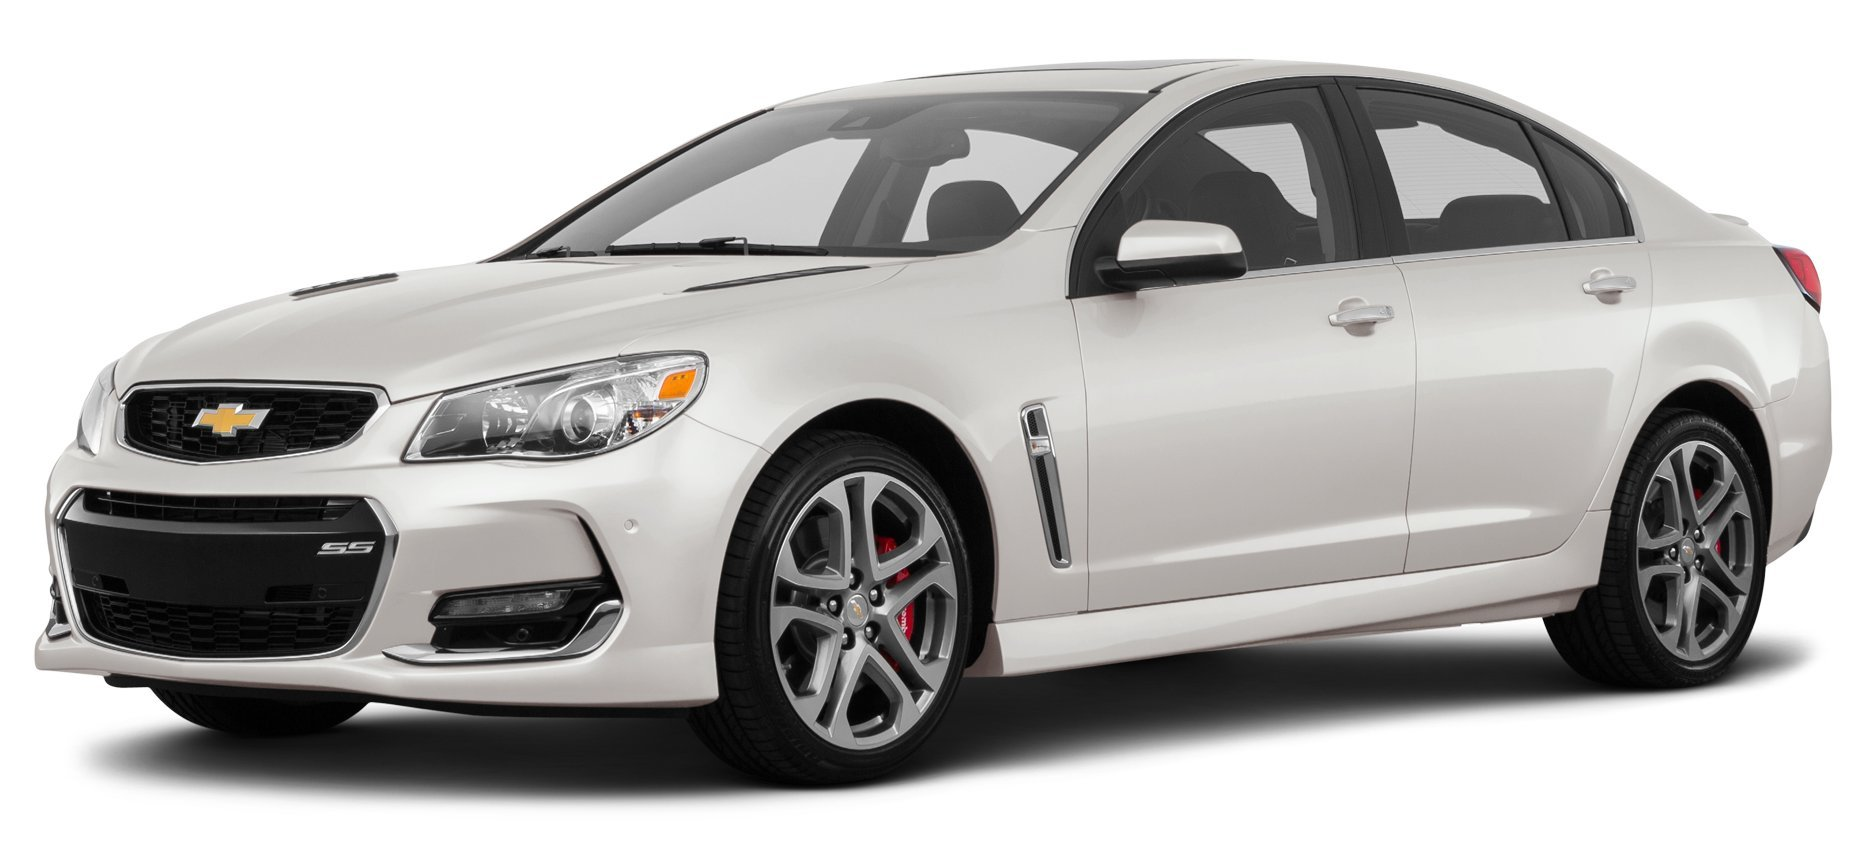 2017 chevrolet ss reviews images and specs vehicles. Black Bedroom Furniture Sets. Home Design Ideas